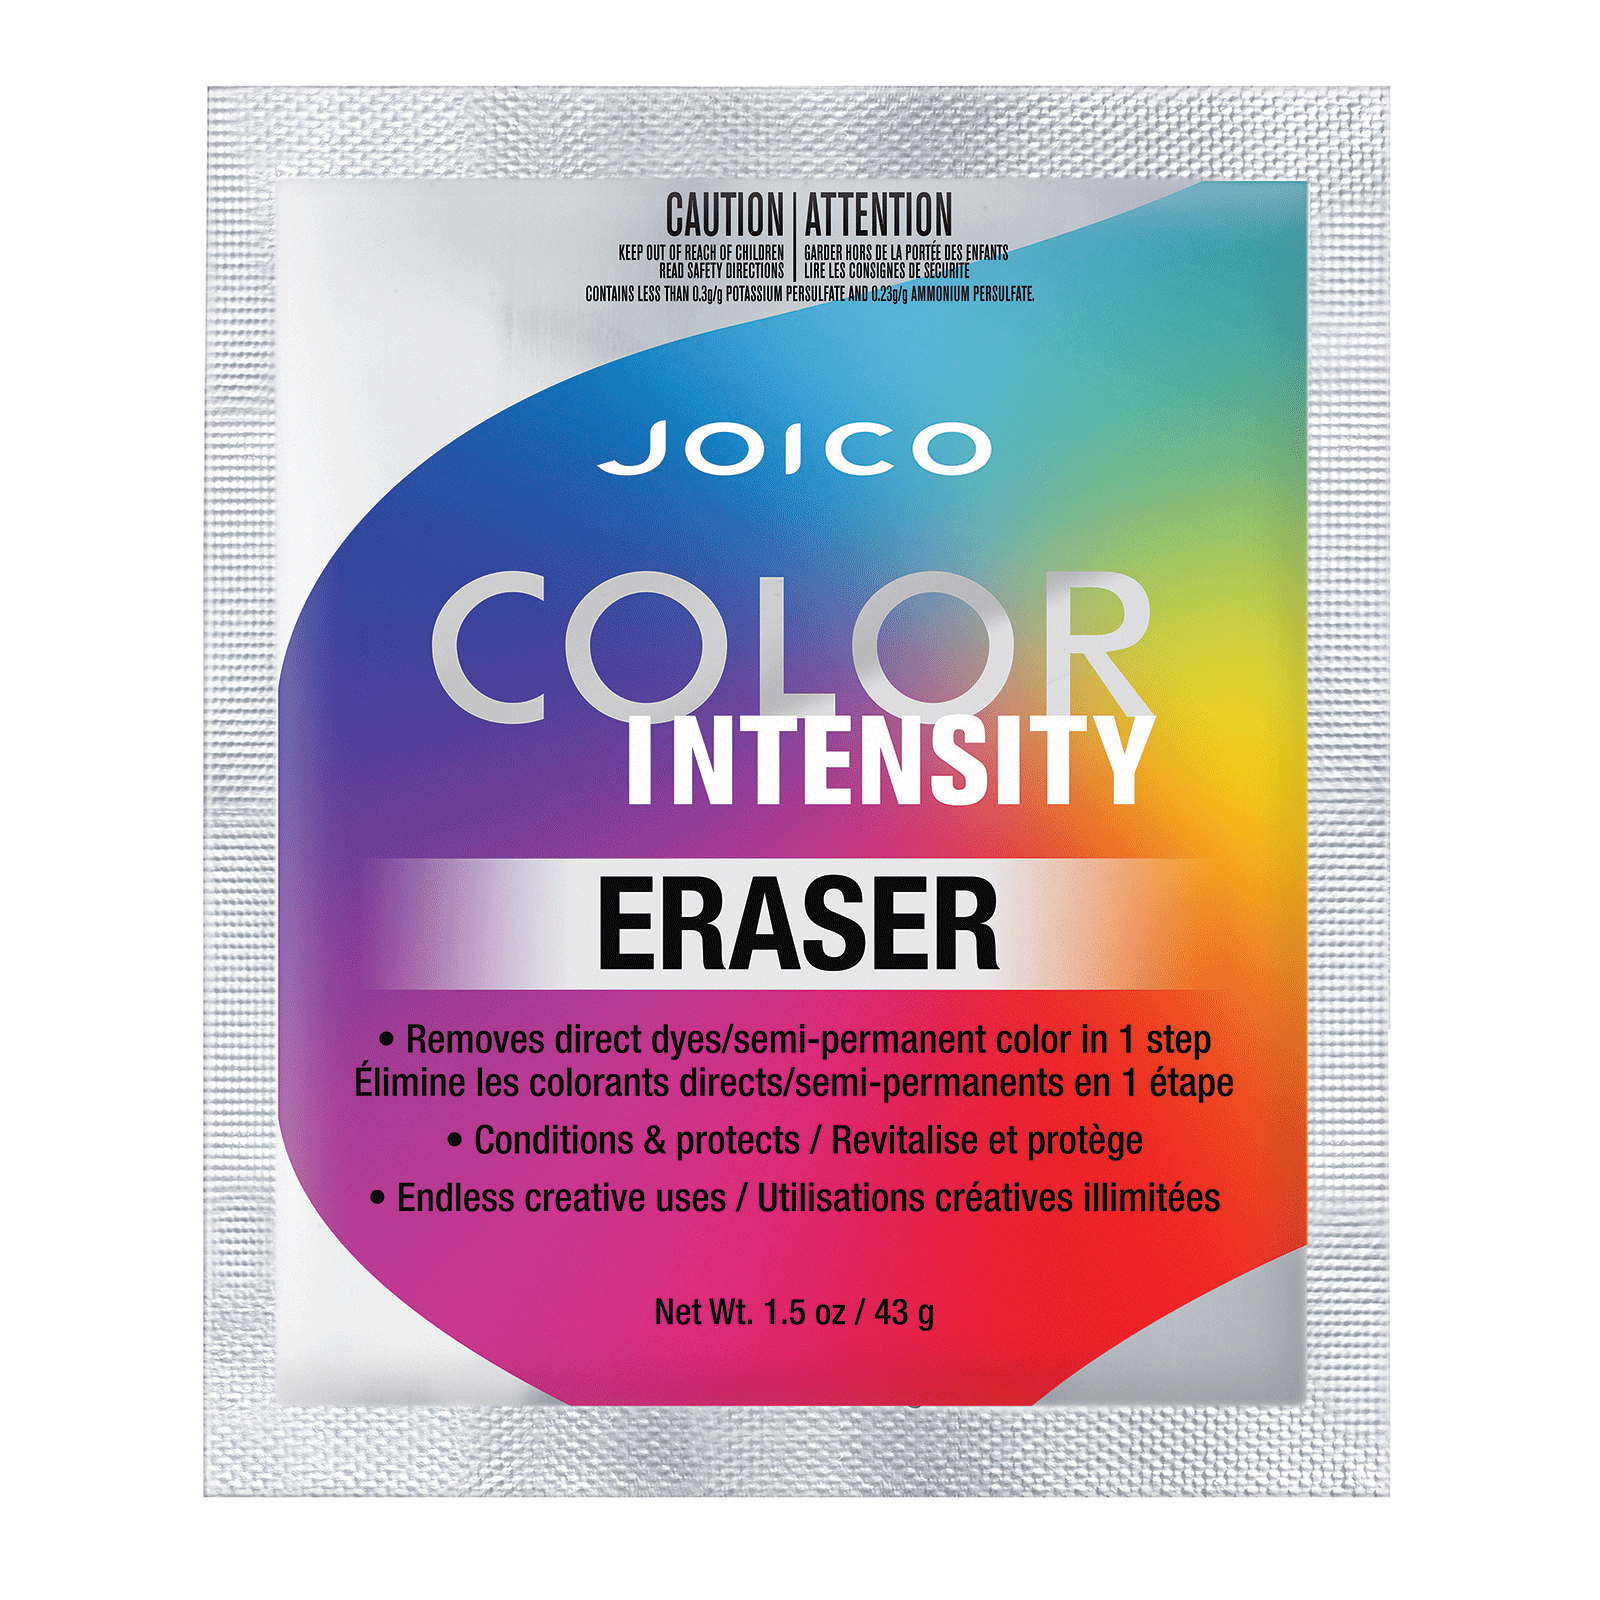 Color Intensity Eraser